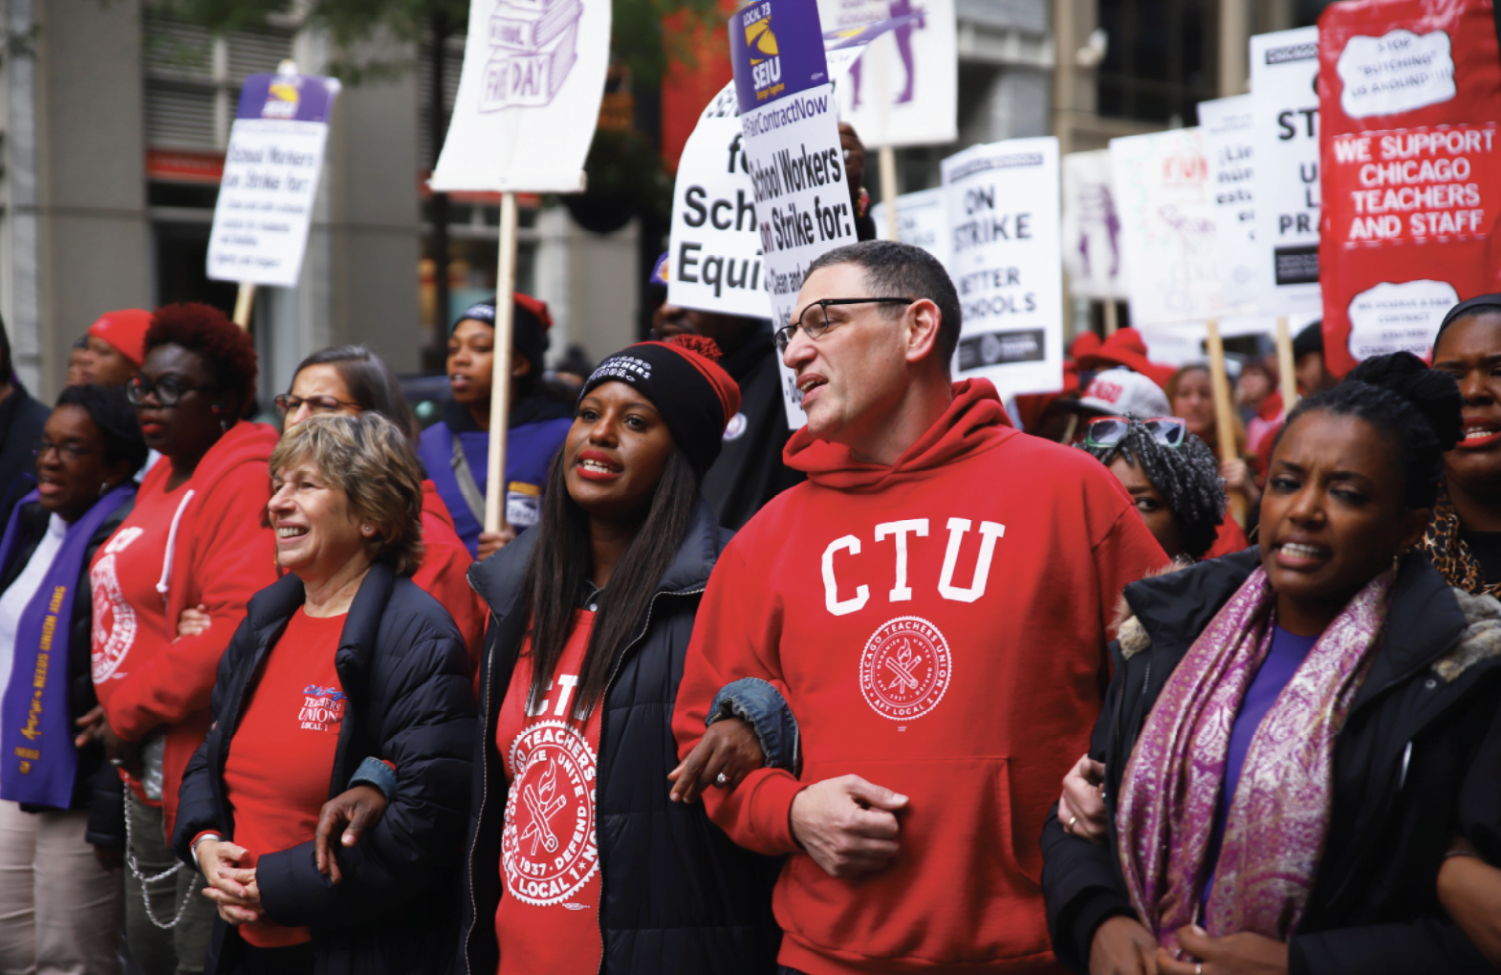 Chicago Teachers Union President Jesse Sharkey (center) and Vice President Stacy Davis Gates (left) join members of to walk the streets of Chicago on Thursday, Oct. 17.